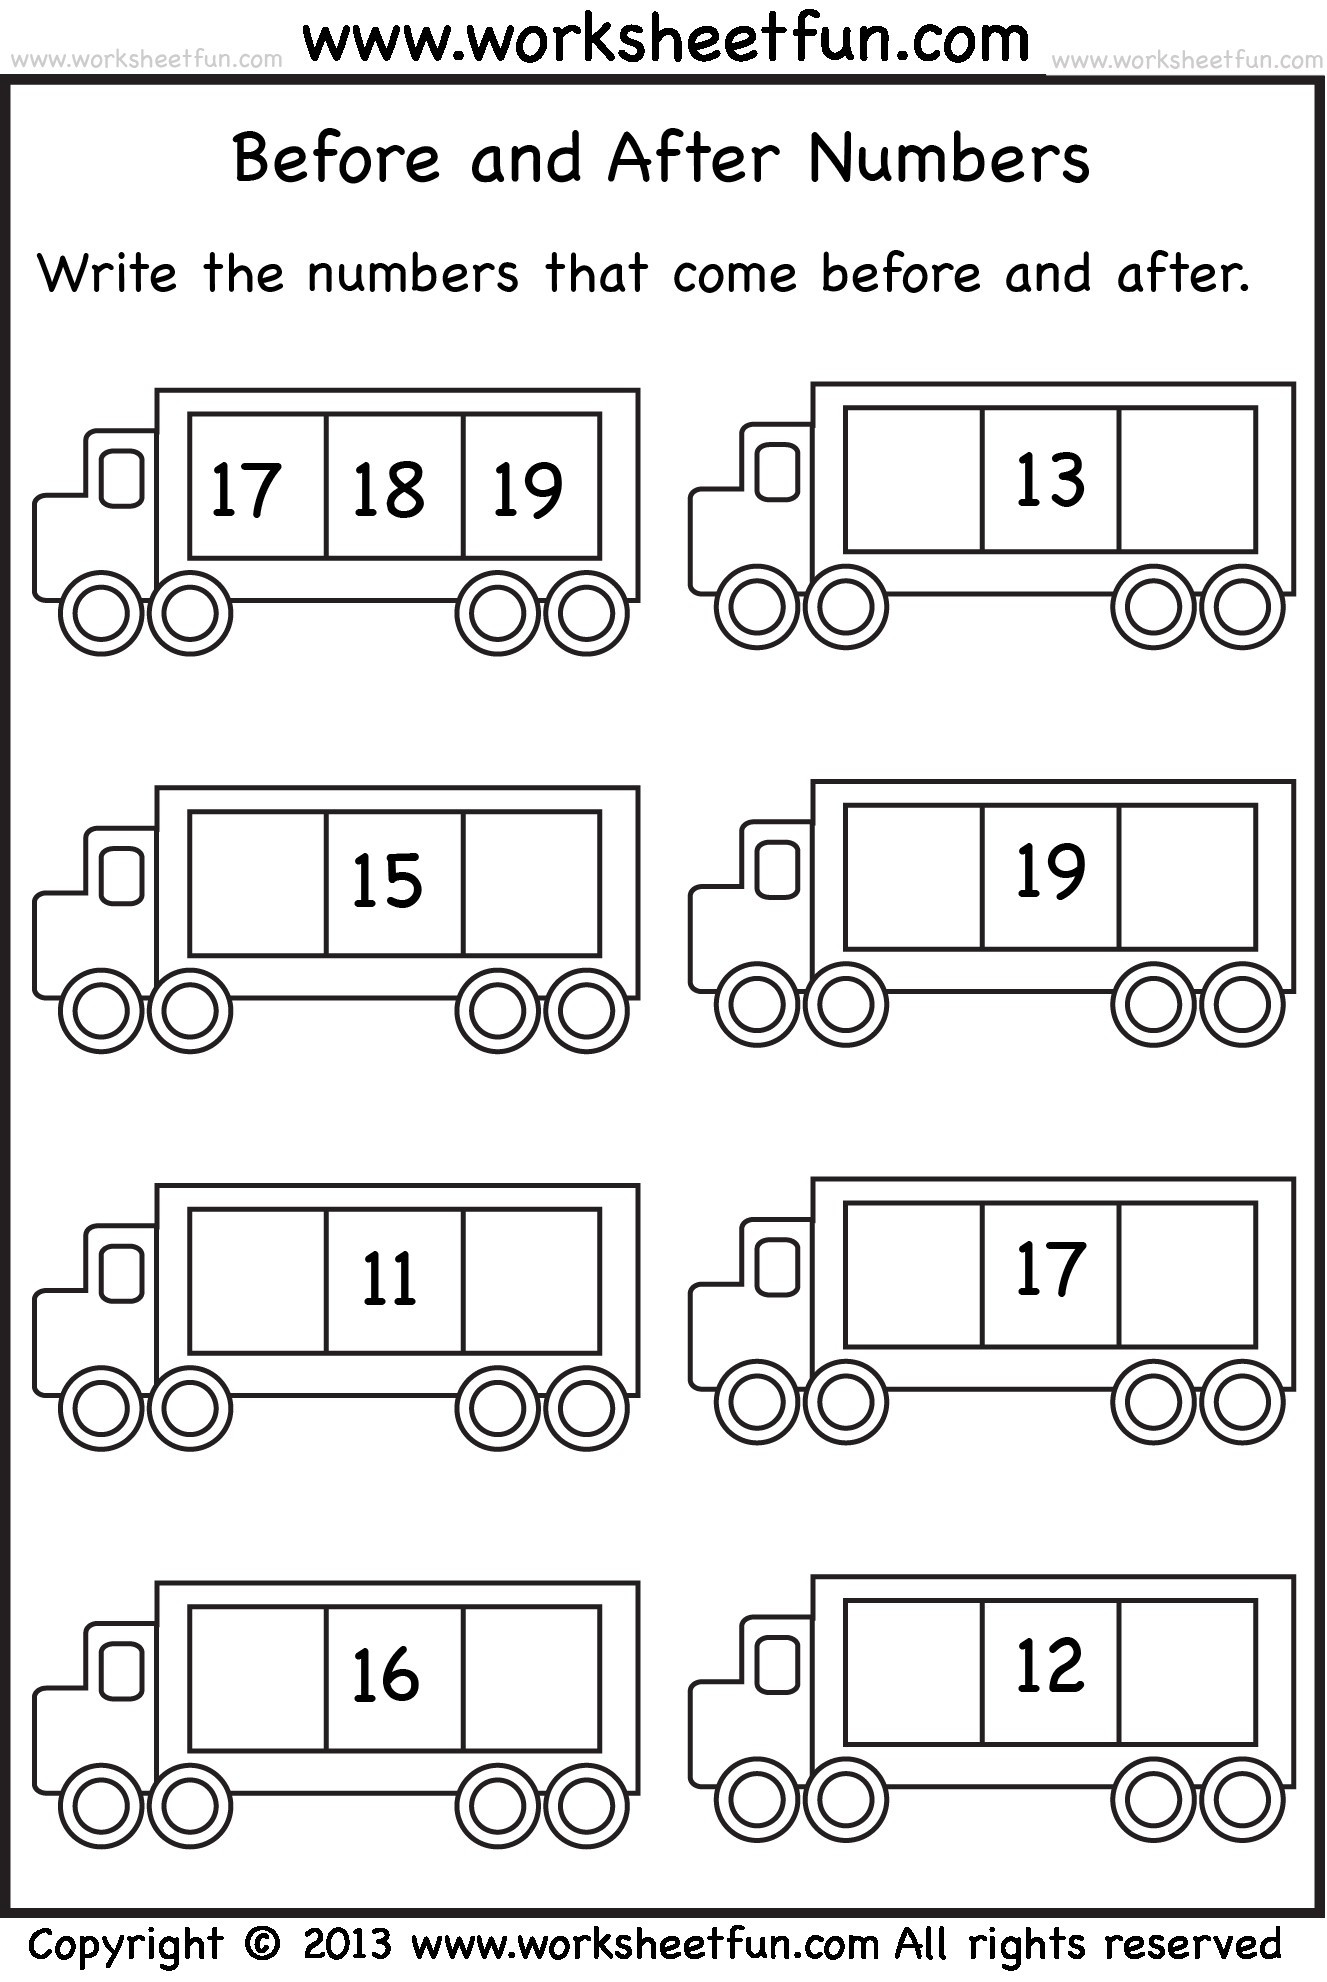 Short Vowel Worksheets 1st Grade 1st Grade Sample Speech Guest Speaker for Elementary